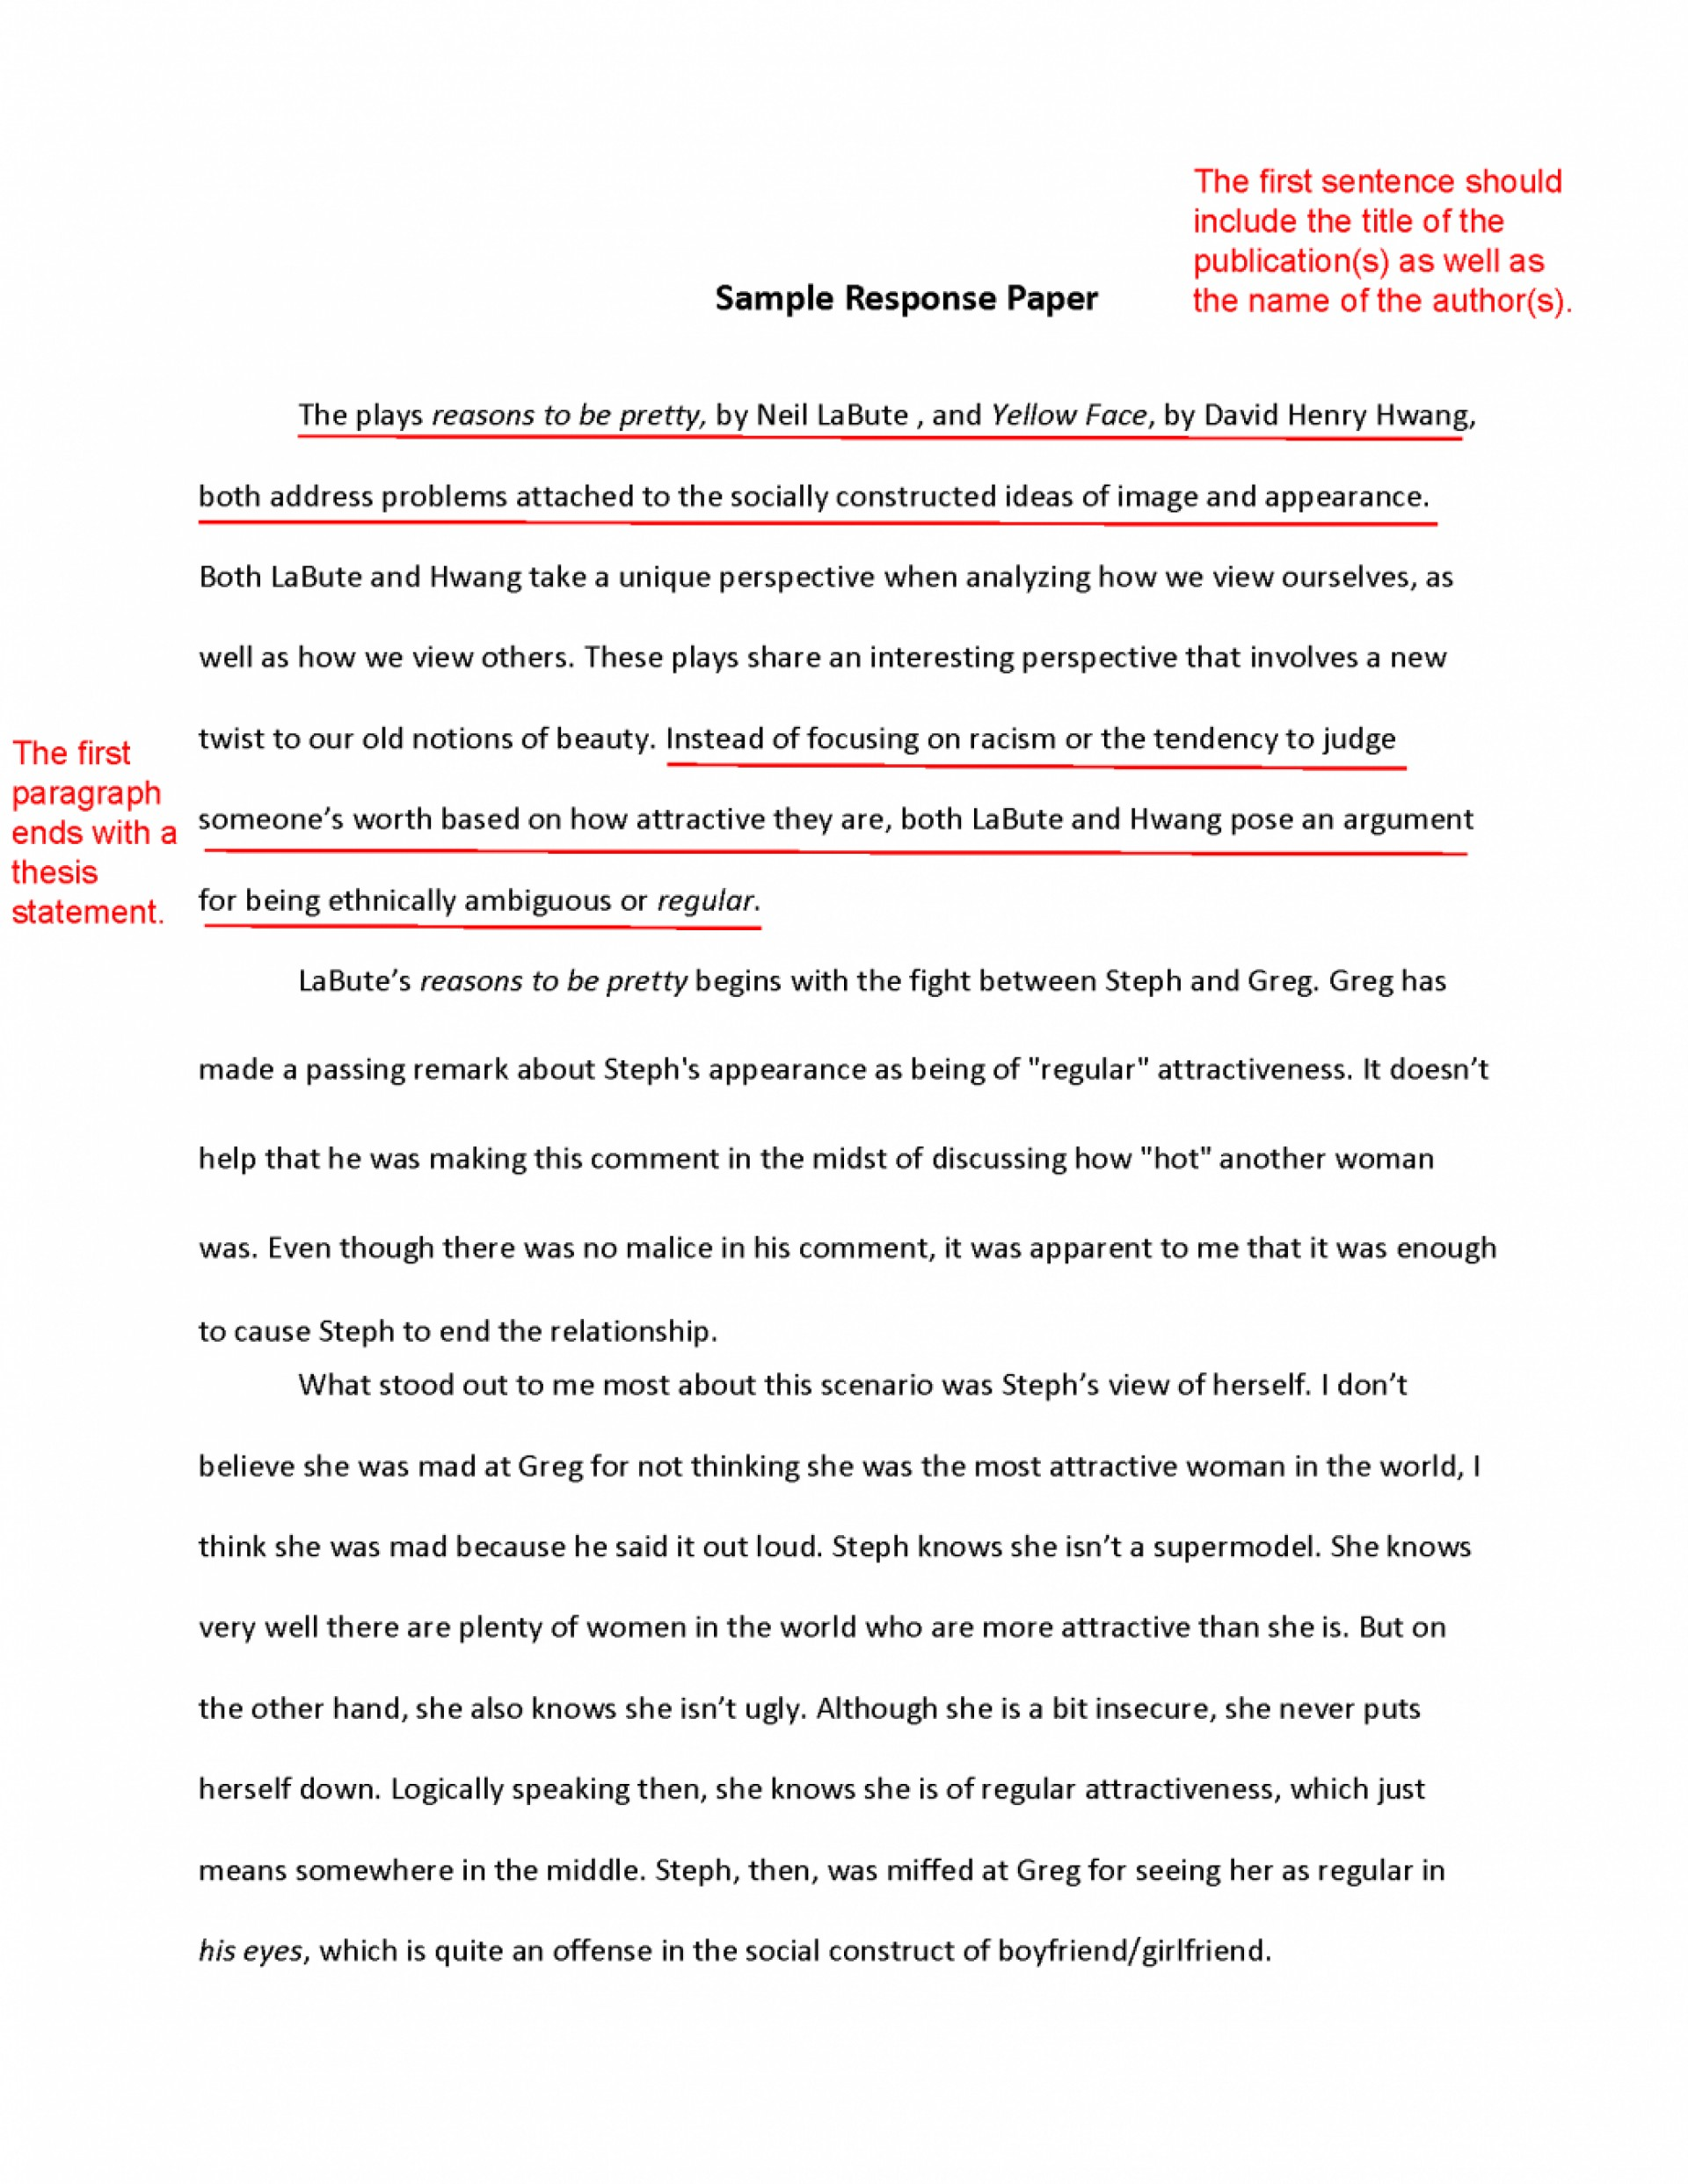 017 Proposal Essay Topics List Response Sociology Template Proposing Solution Examples Responce 1038x1343 Research Paper Of Rare Papers 1920